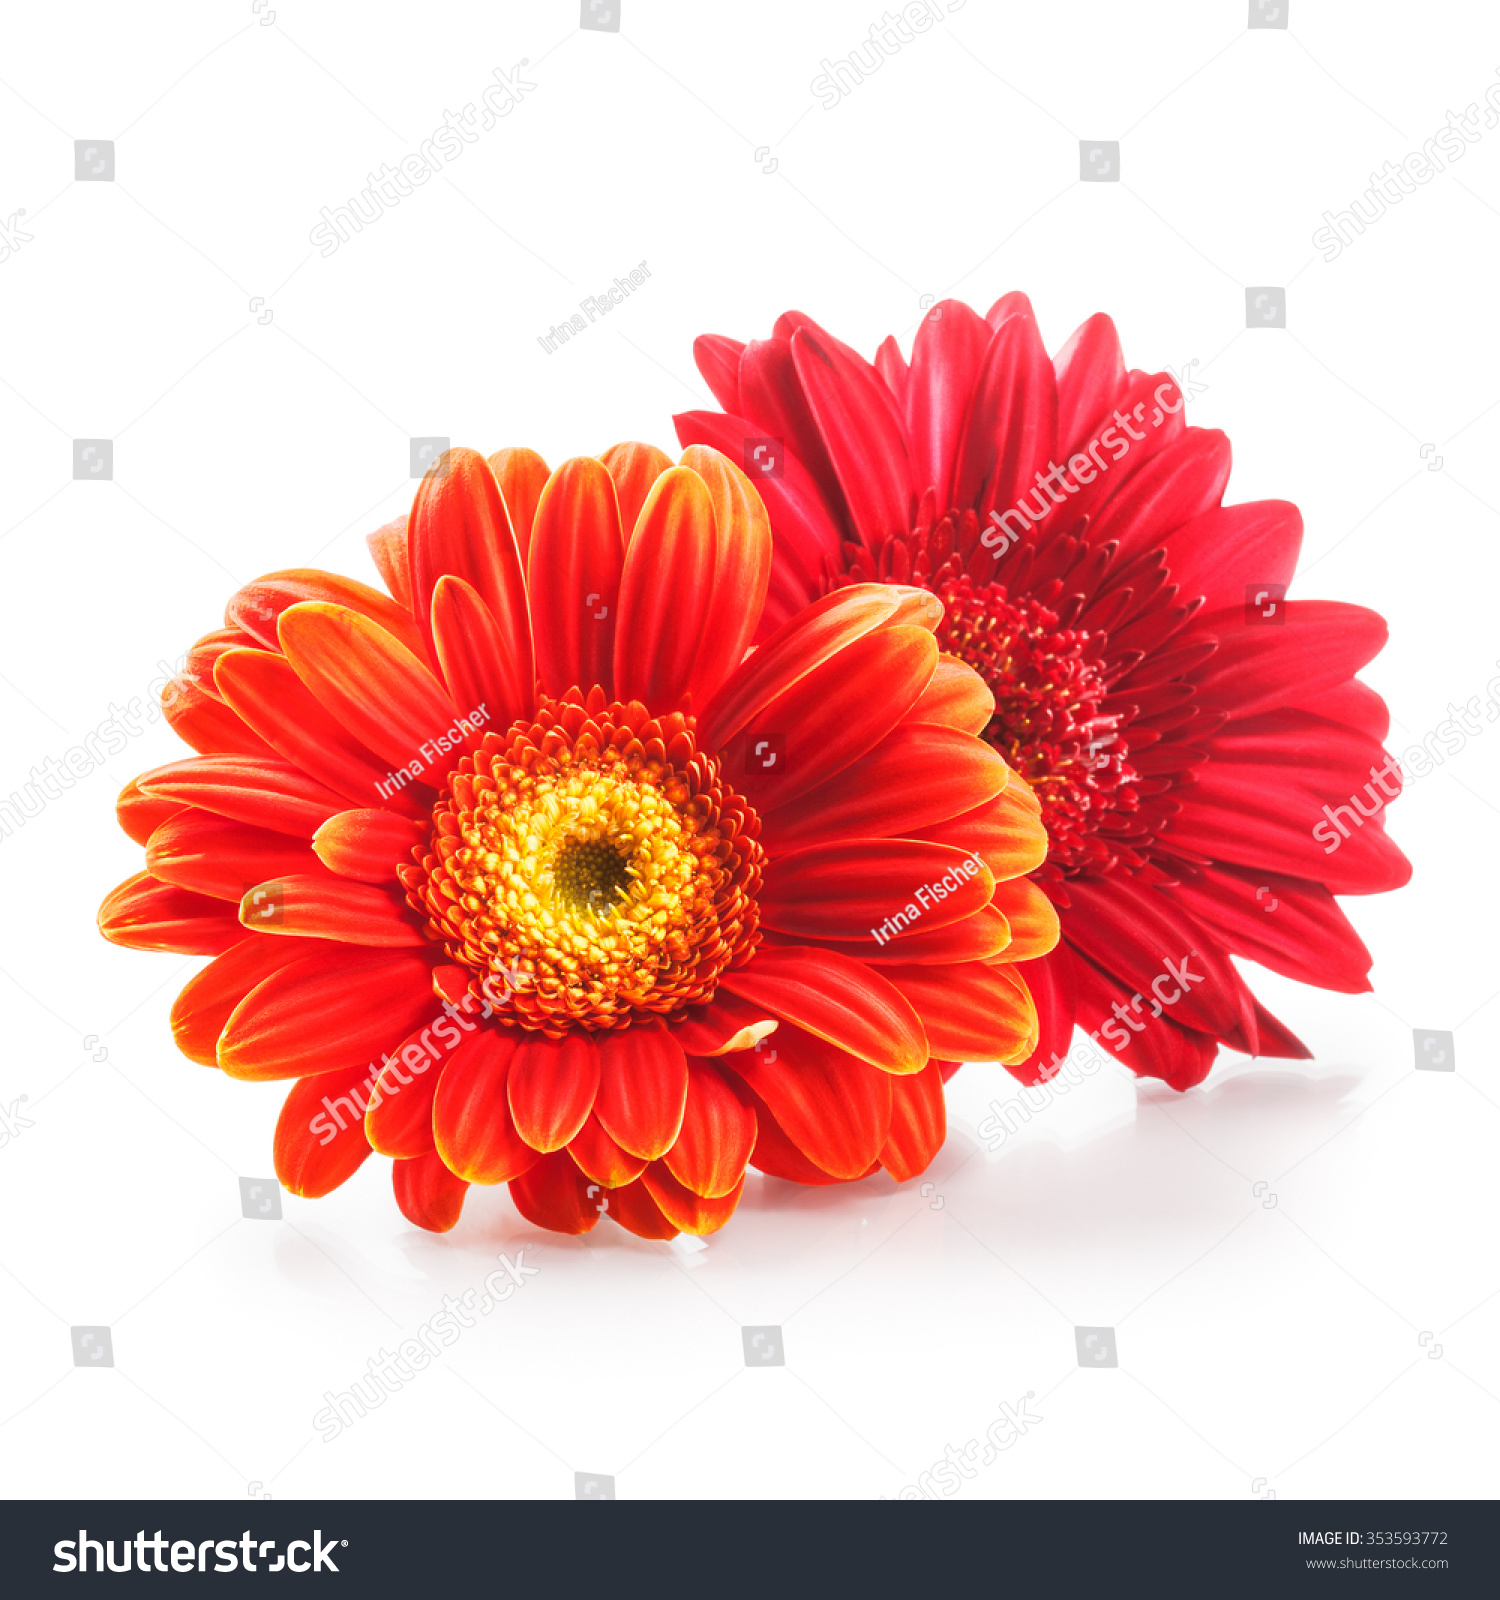 Two Gerbera Daisy Flower Heads Isolated On White Background Design